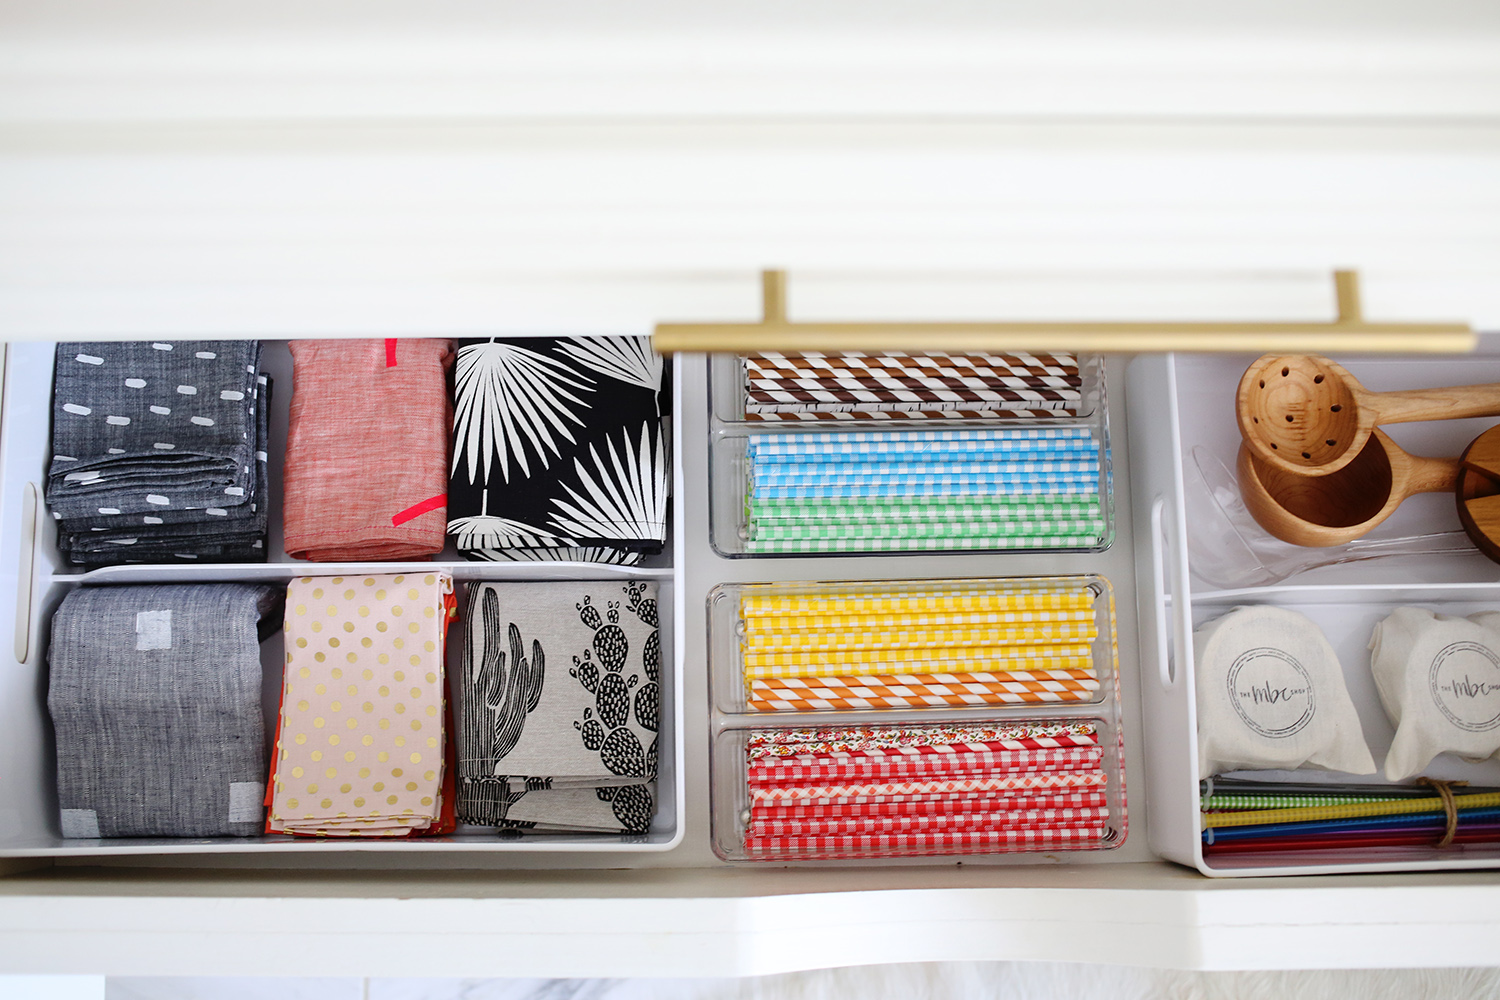 Useful organization ideas